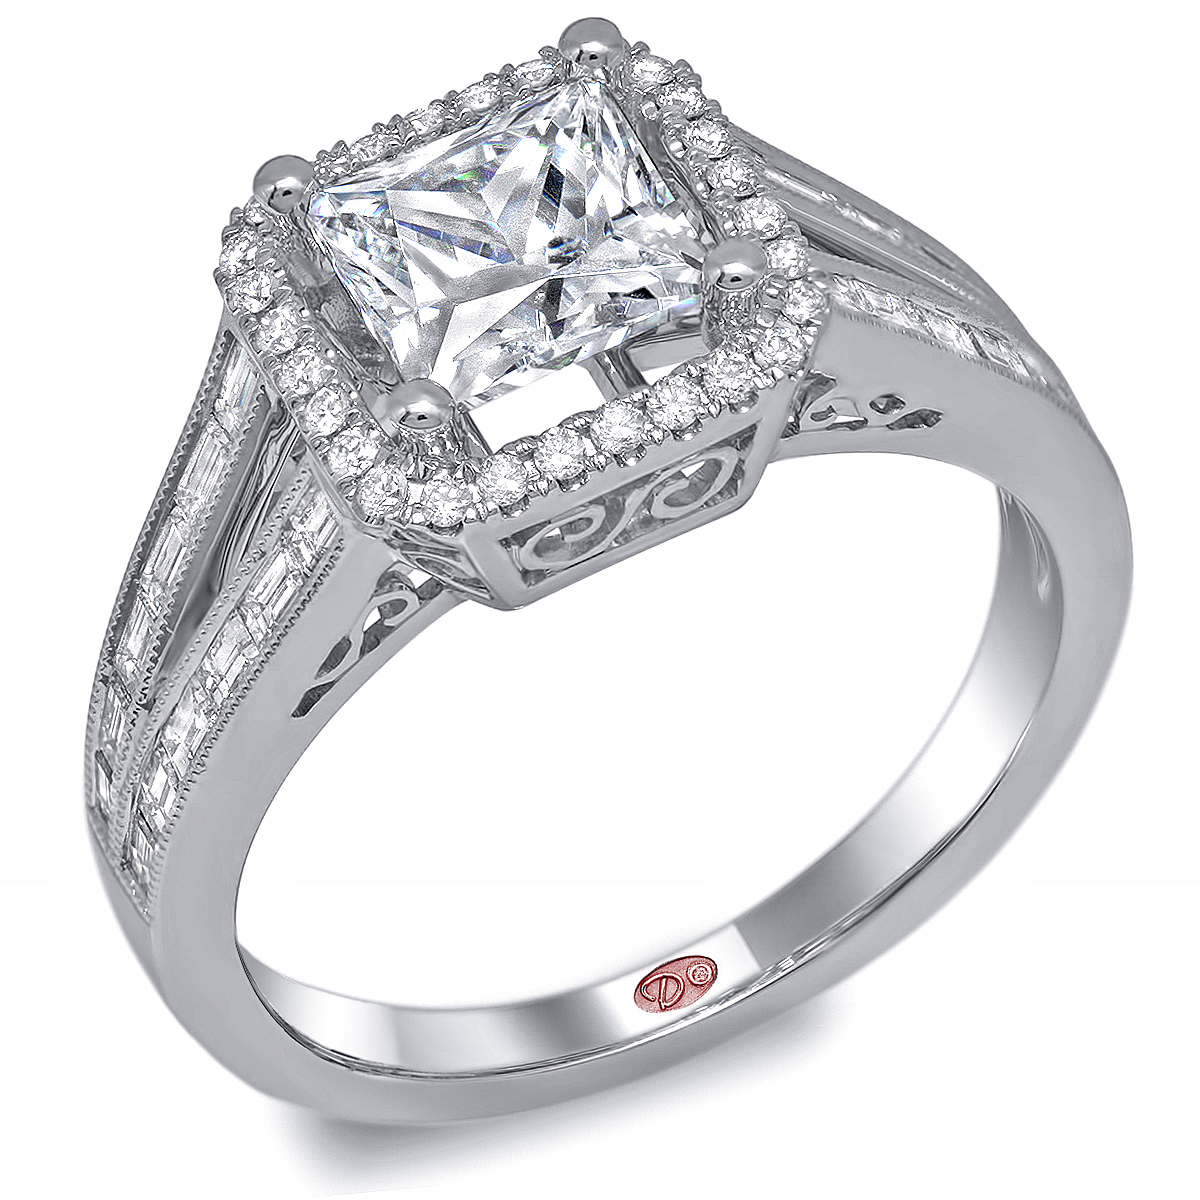 Designer Engagement Rings In Miami